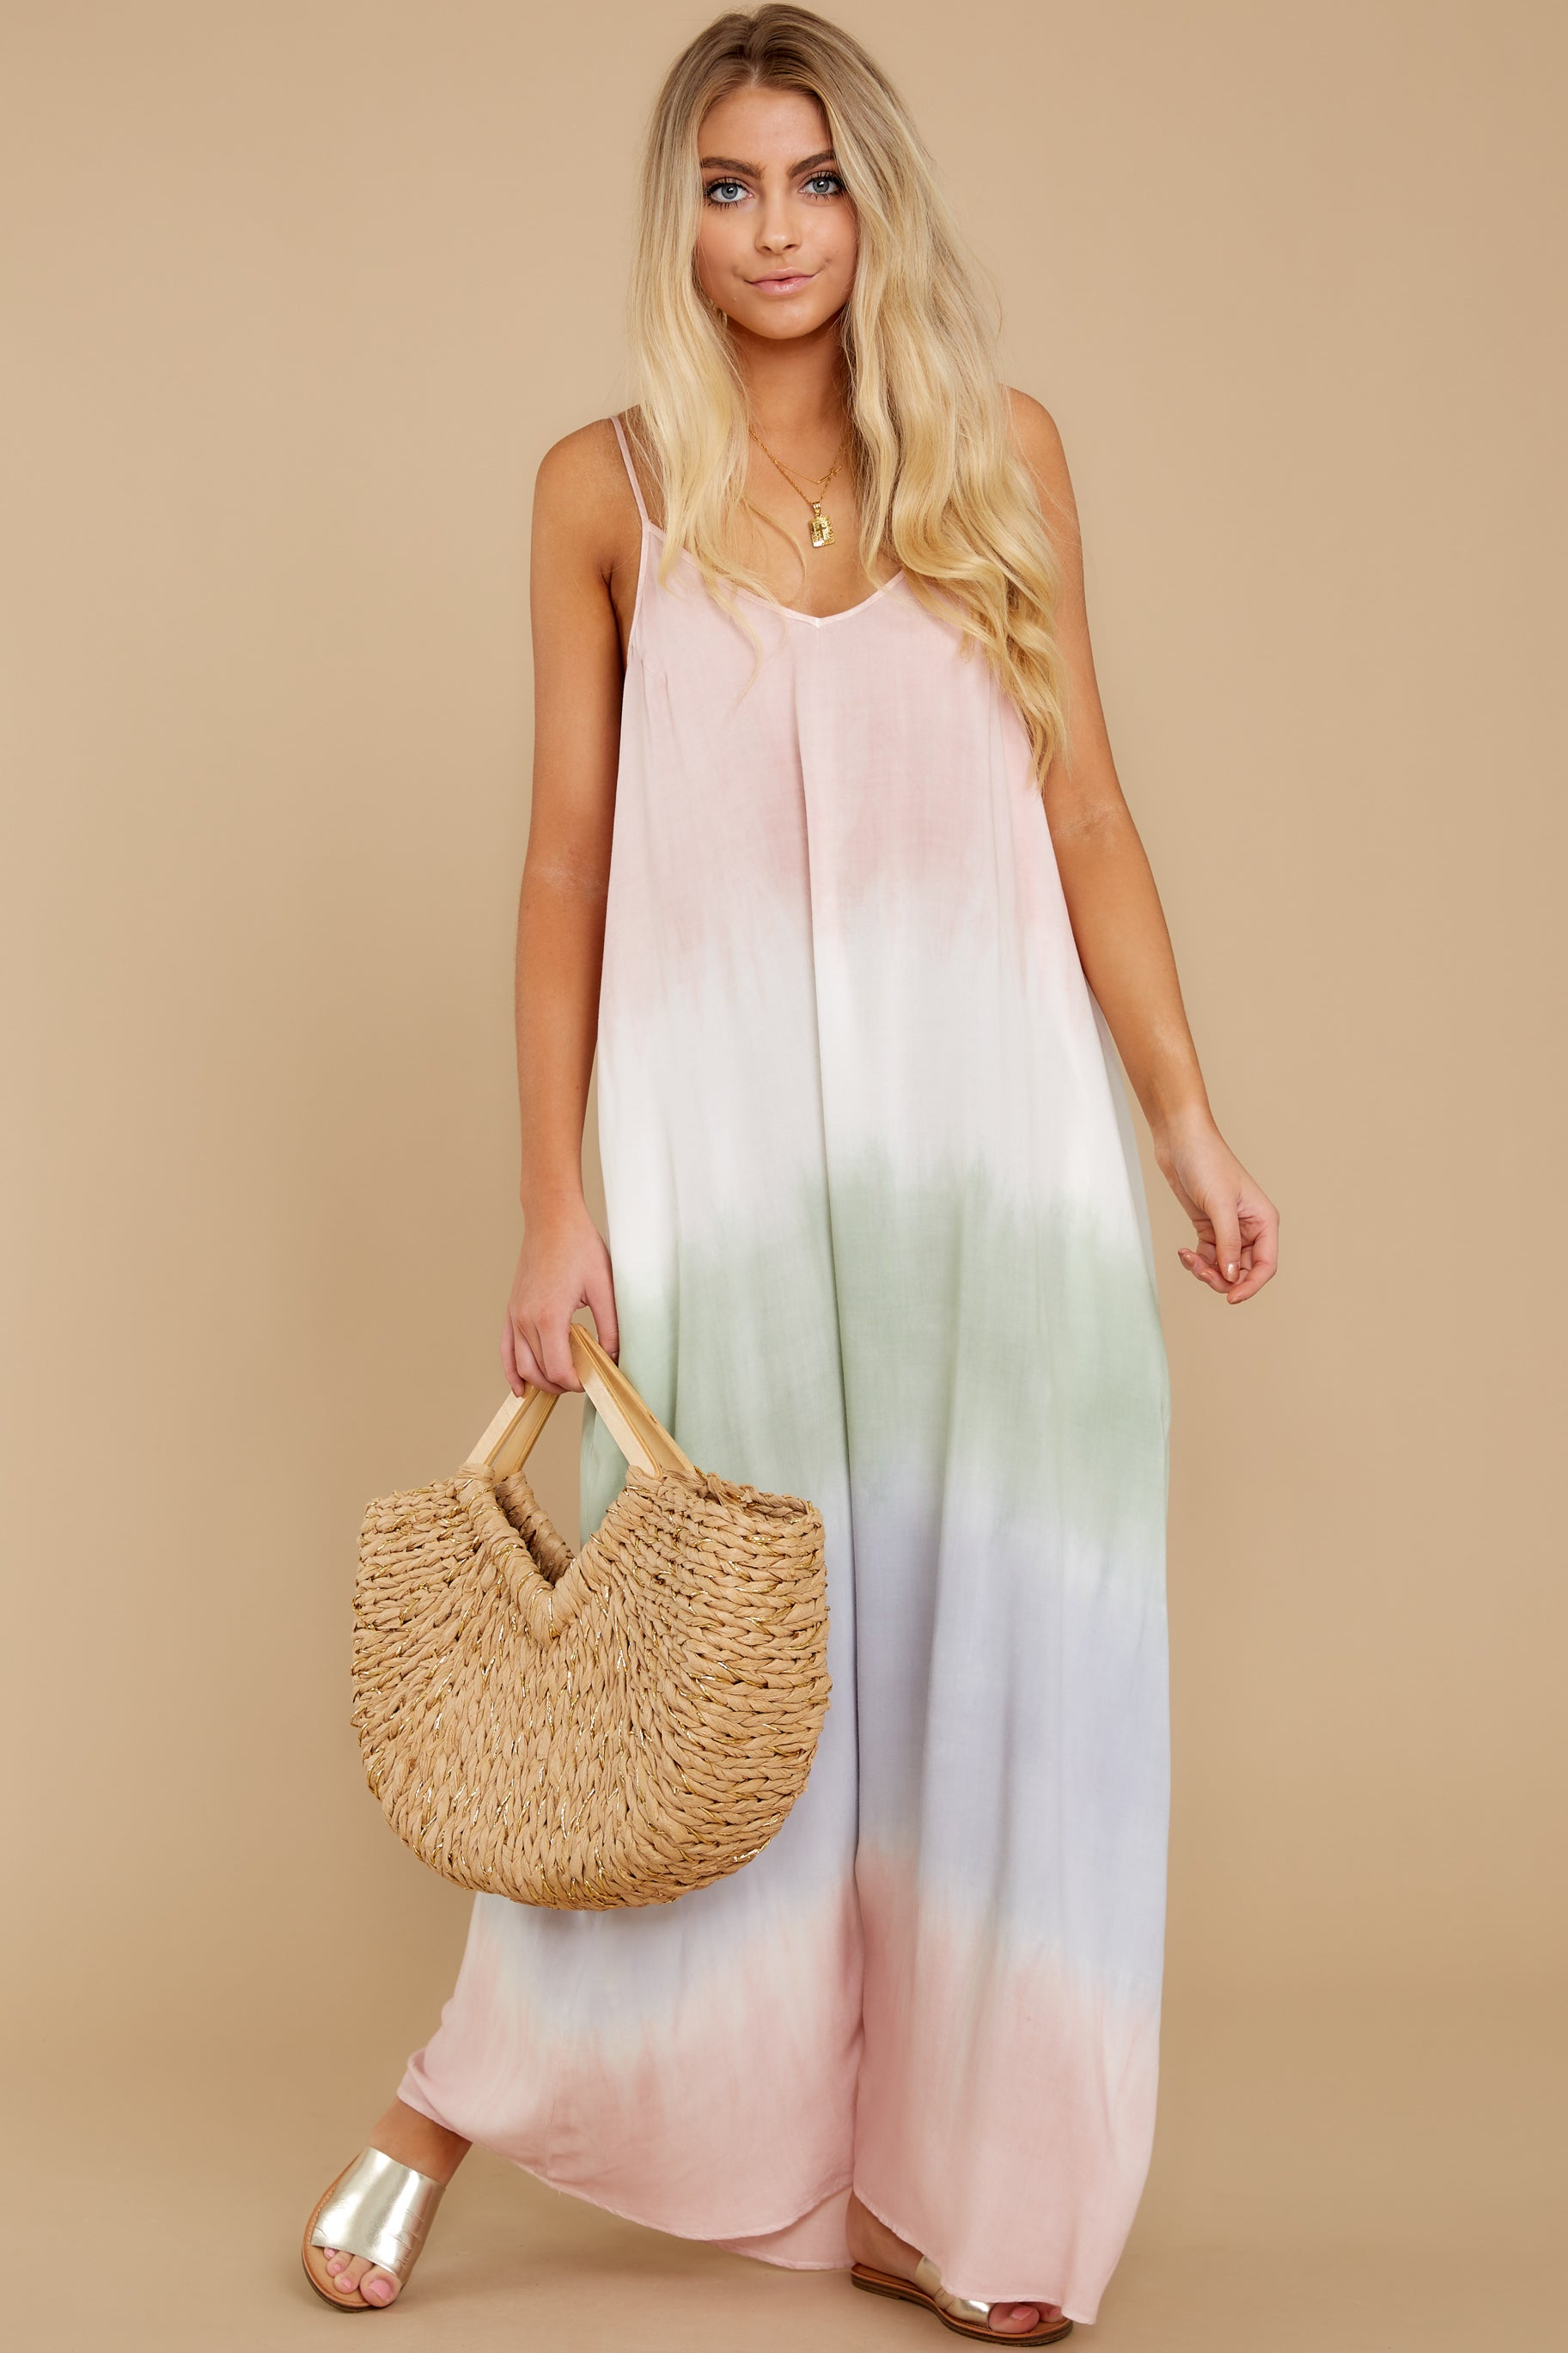 2 All My Love Blush Pink Multi Maxi Dress at reddress.com